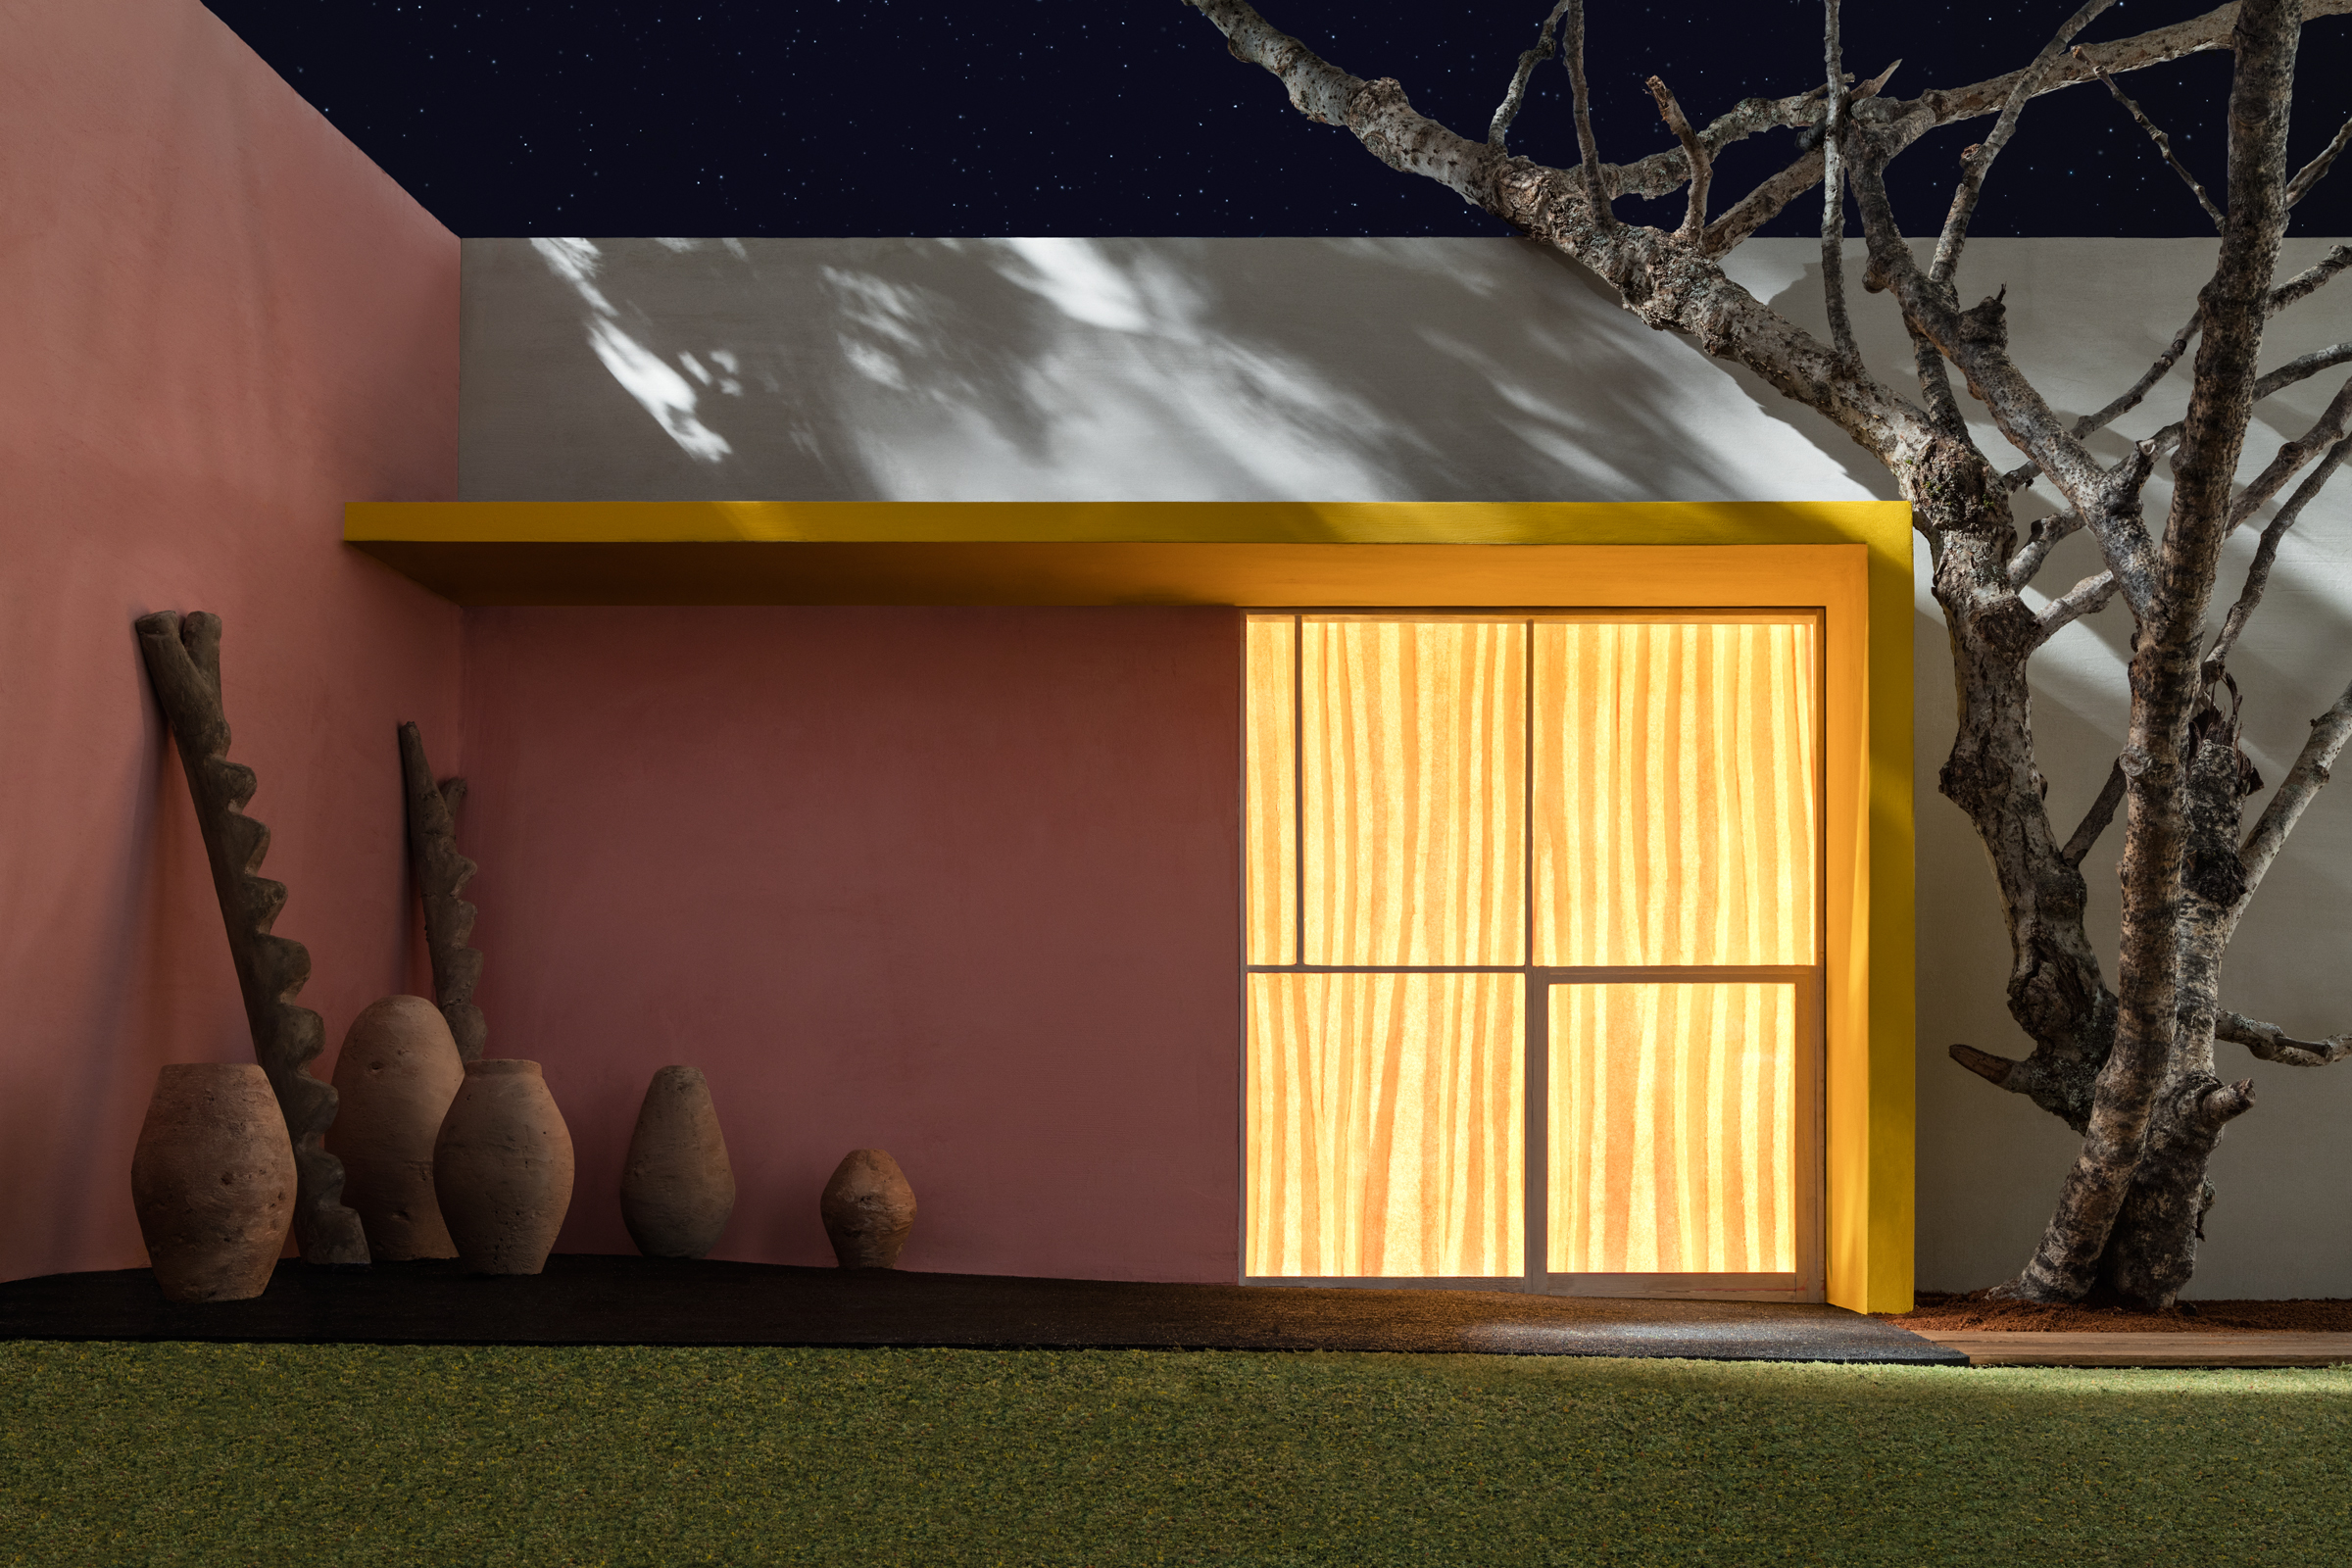 Yellow Overhang with Patio, 2017